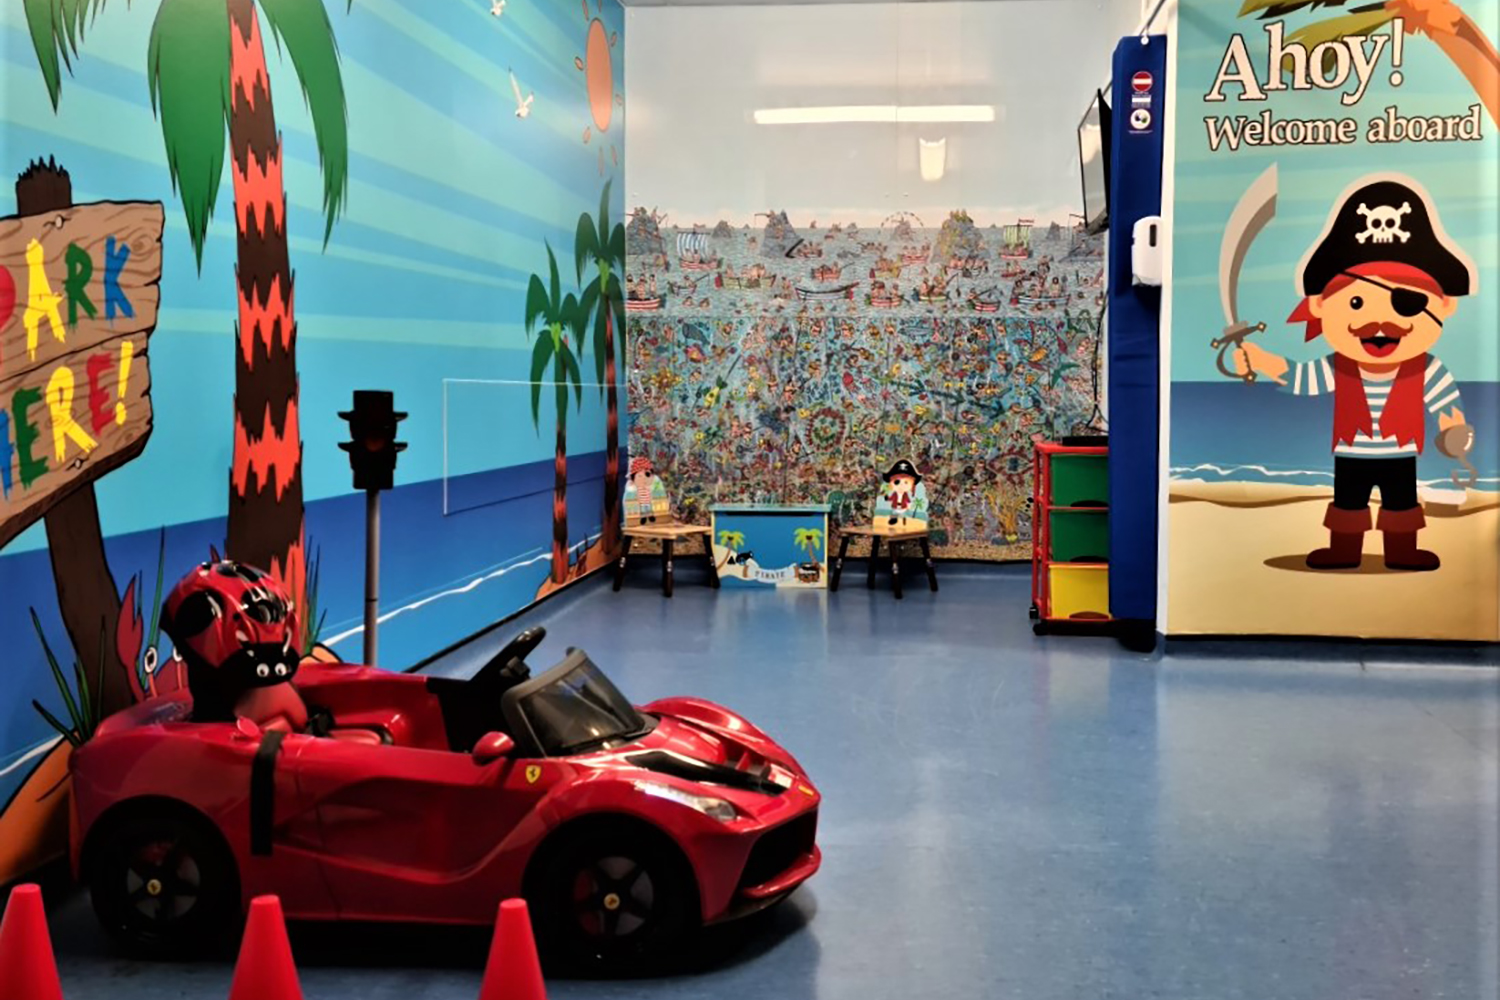 a small, ride-on electric car parked in a colourfully decorated children's waiting area